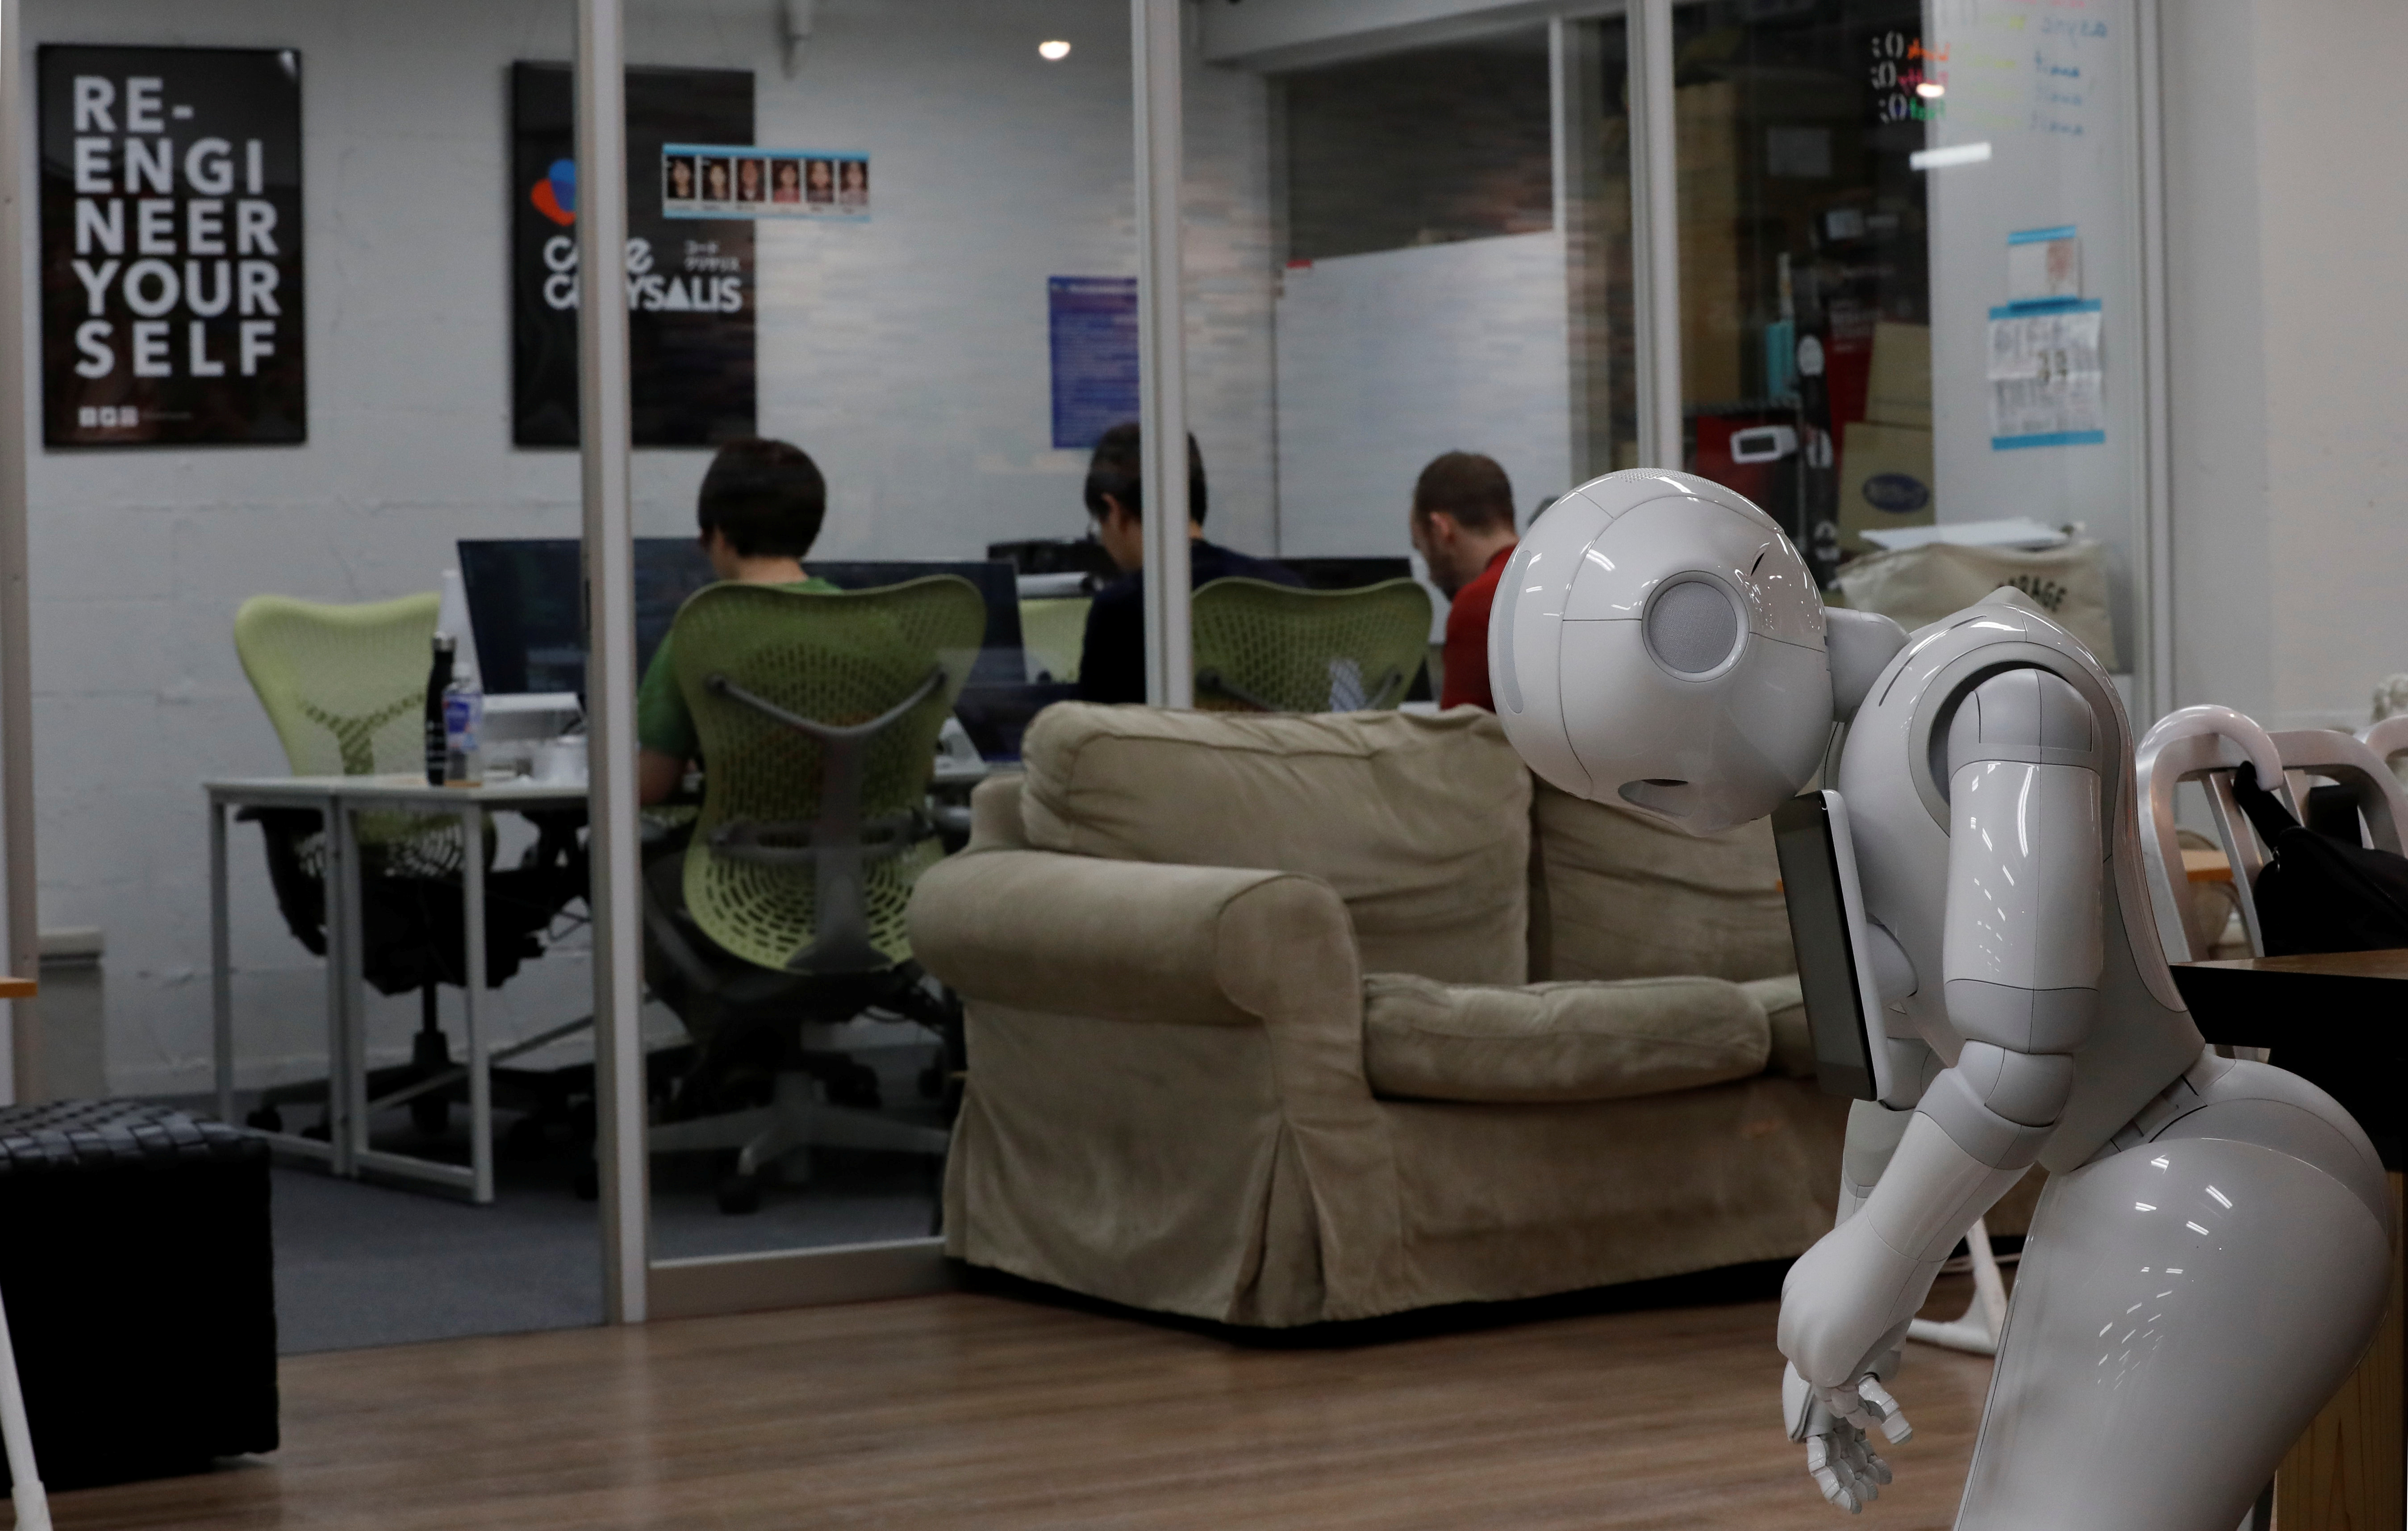 SoftBank's humanoid robots 'Pepper' is seen as students attend Code Chrysalis, a software-coding boot camp, at a basement room in Tokyo, Japan, May 23 2018.